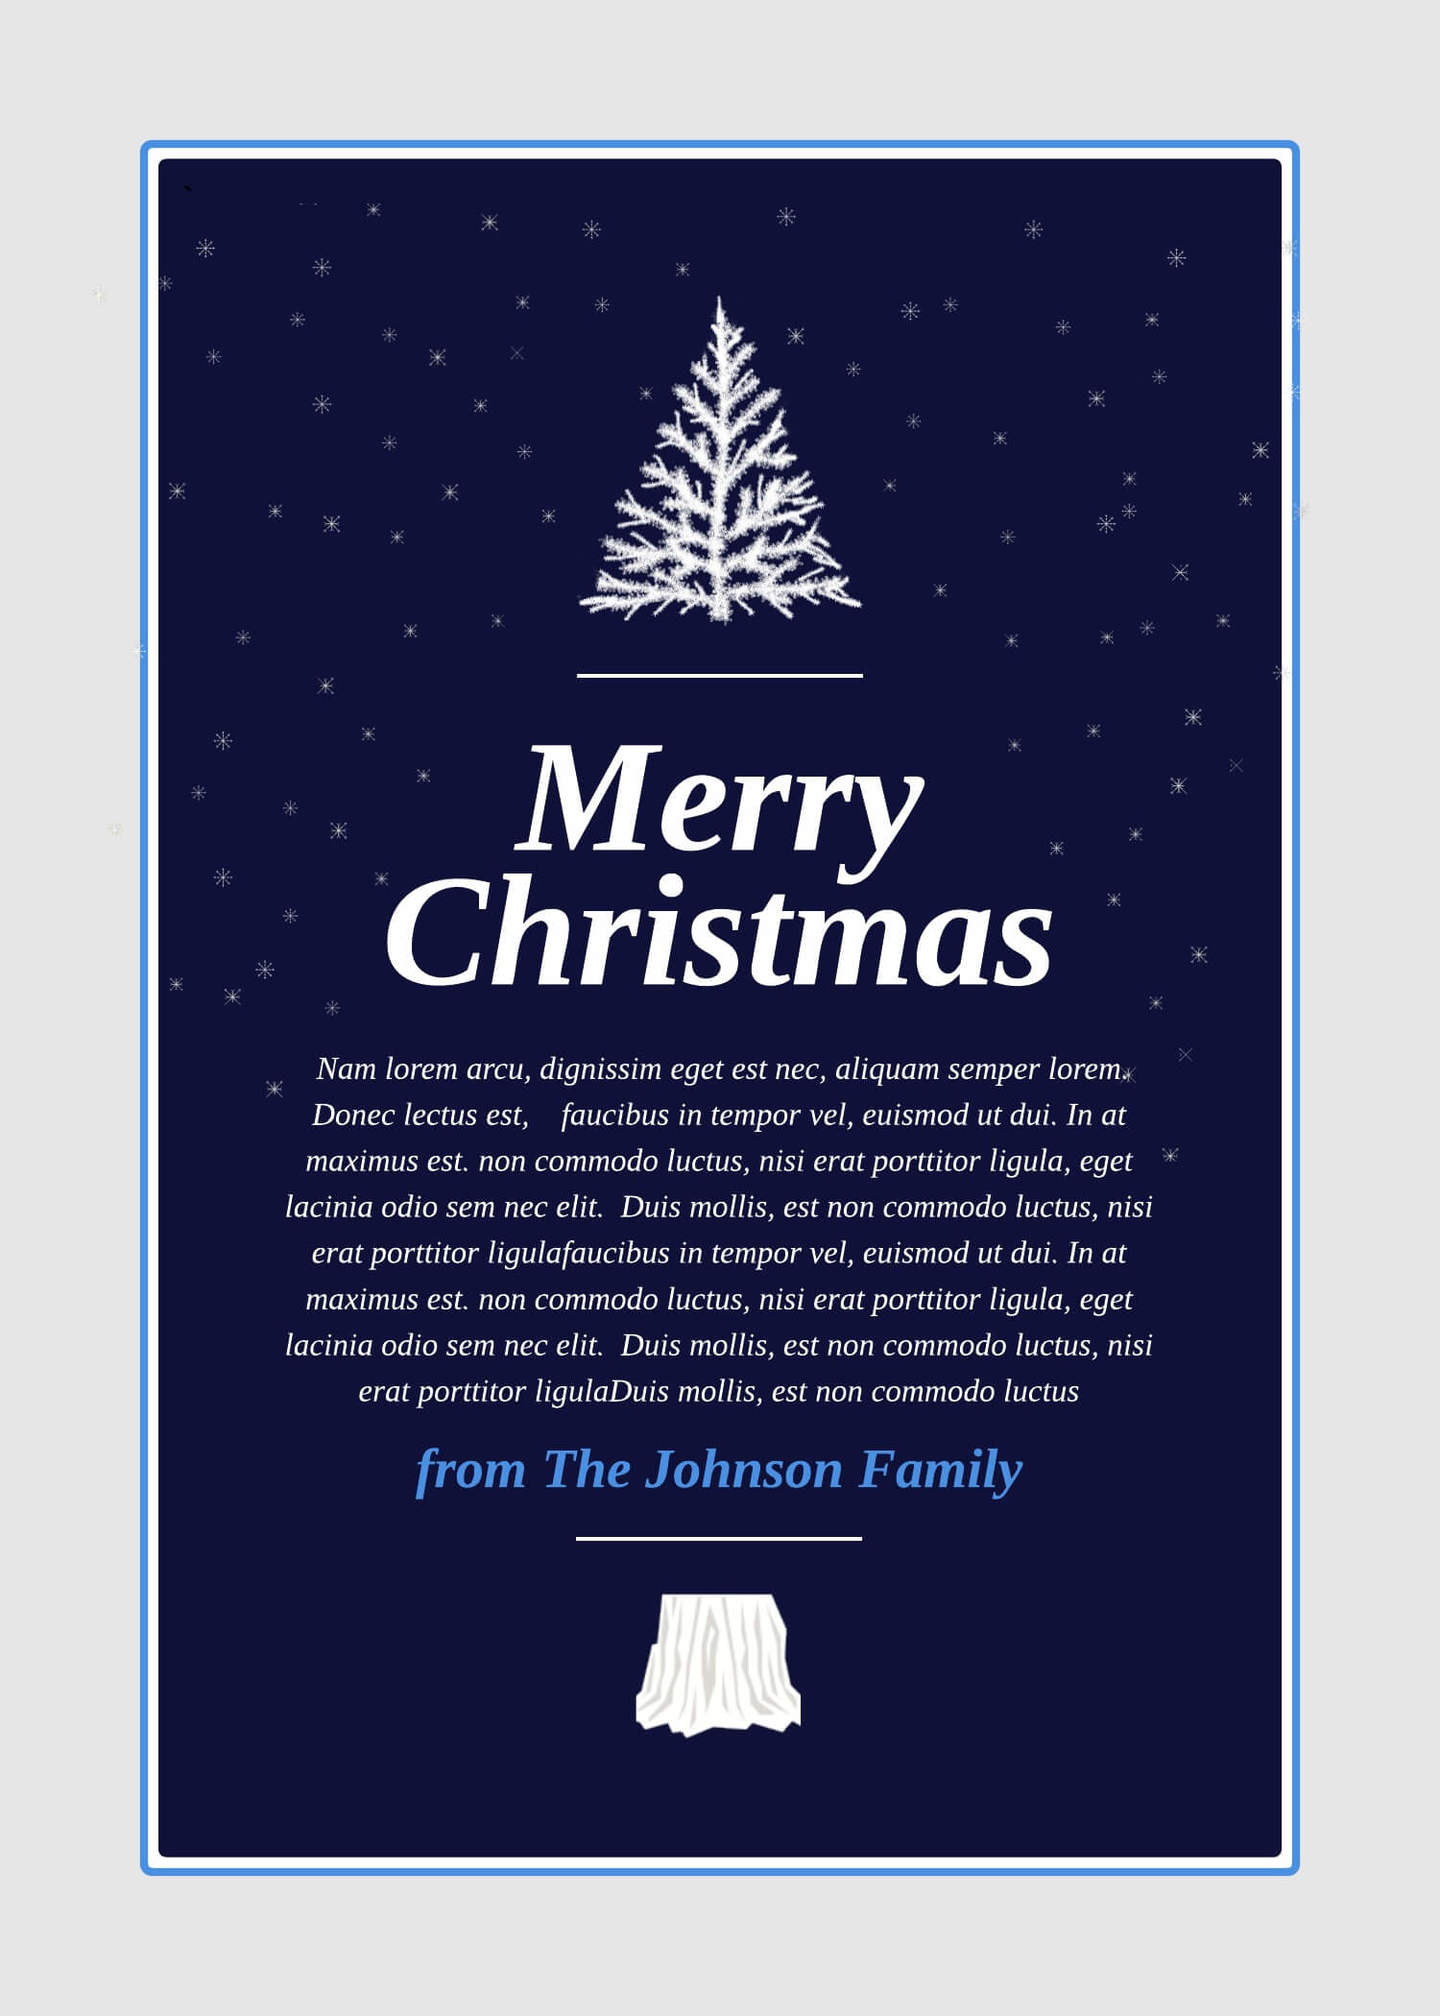 6 free christmas templates examples lucidpress christmas card template m4hsunfo